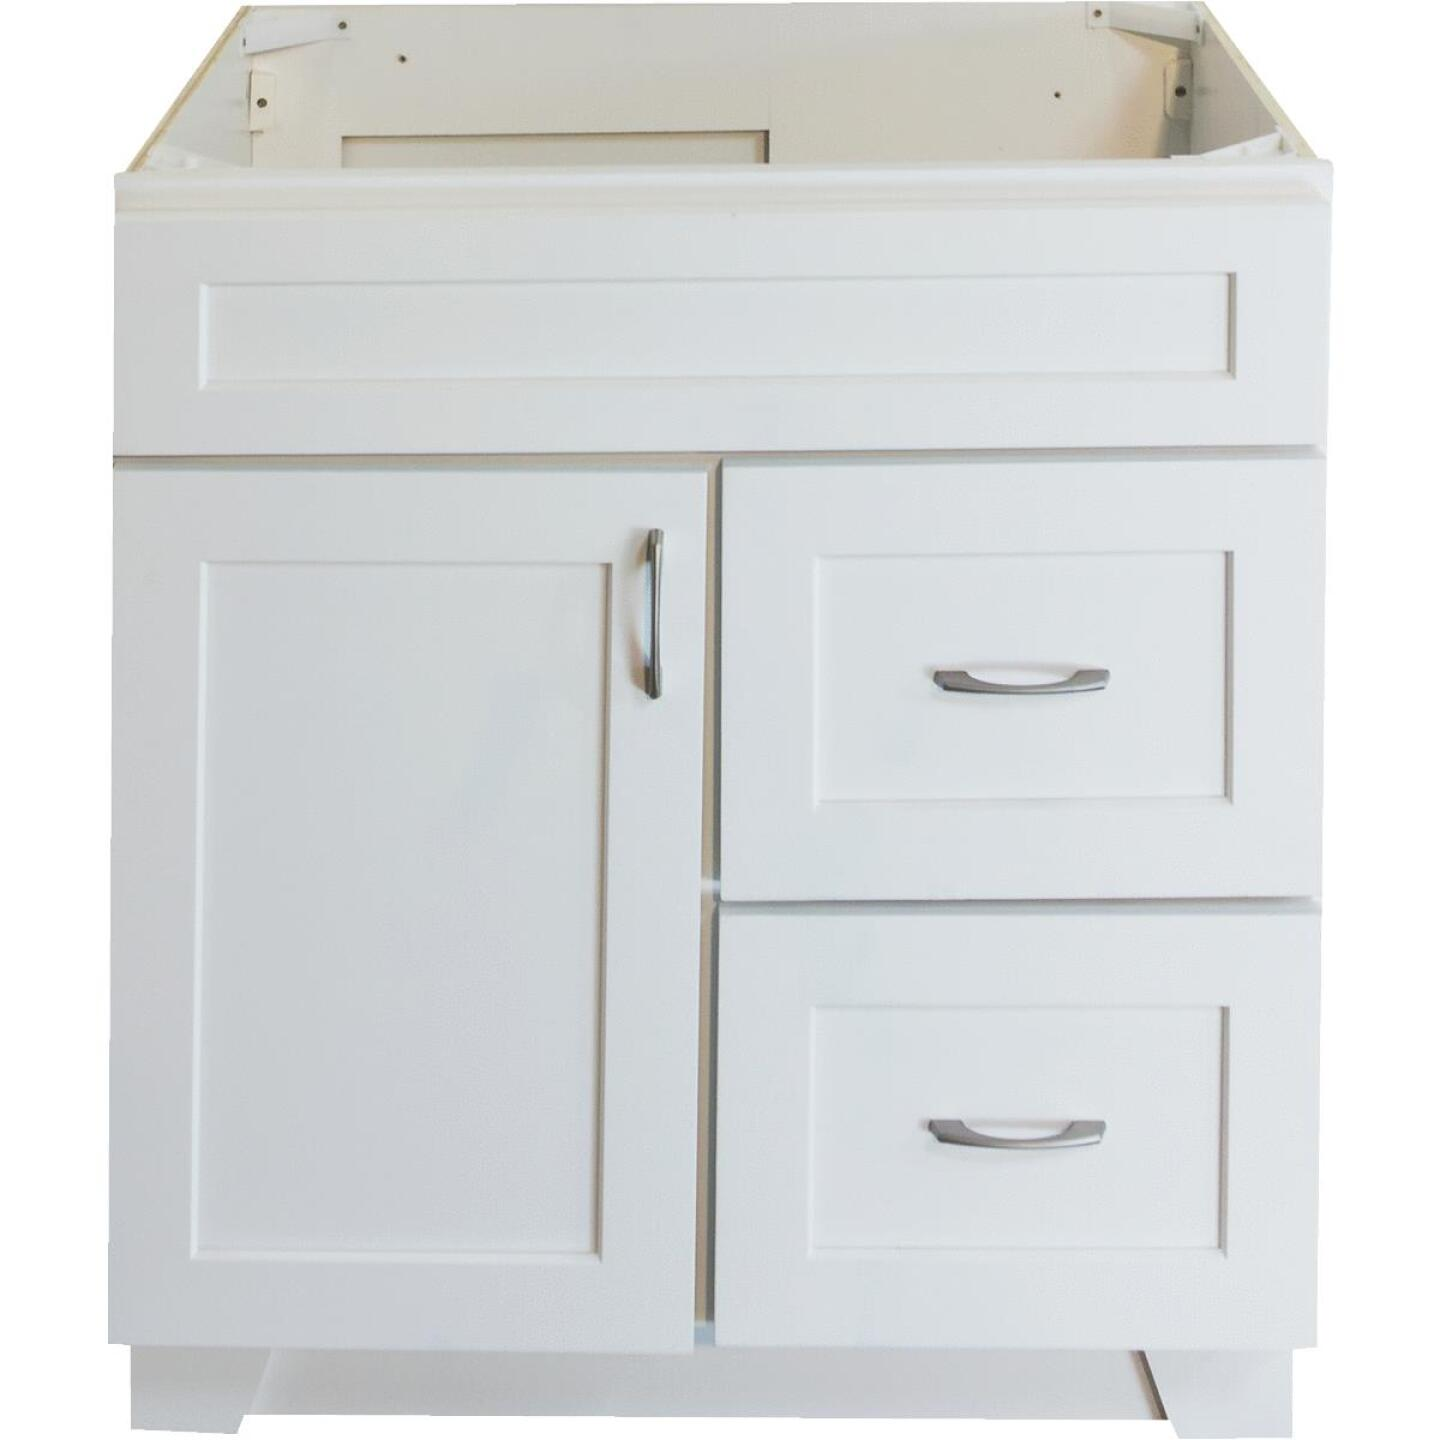 CraftMark Shaker Retreat White 30 In. W x 34 In. H x 21 In. D Vanity Base, 1 Door/2 Drawer Image 1